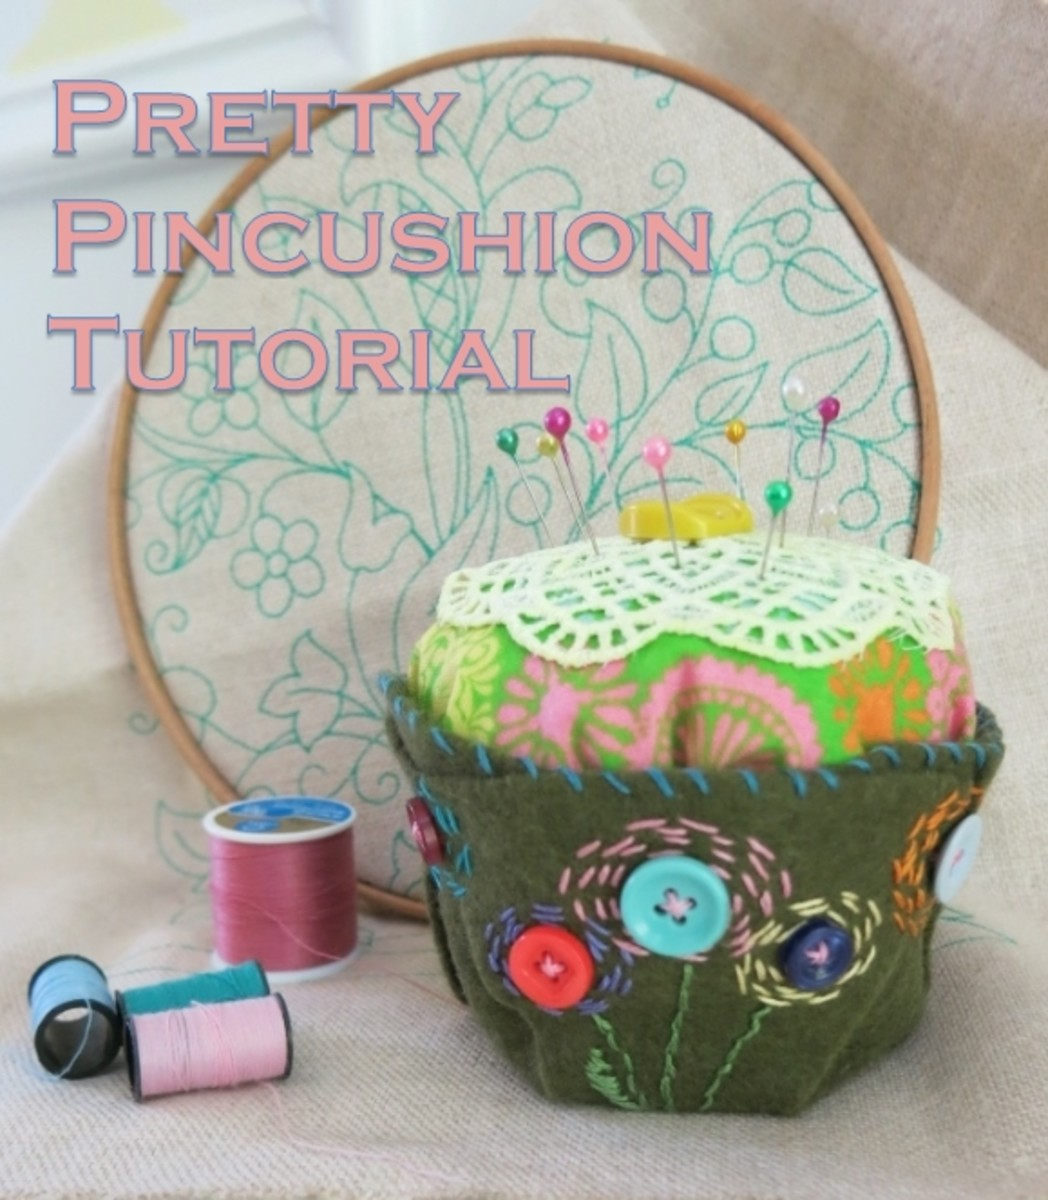 How to Make an Embroidered Pincushion